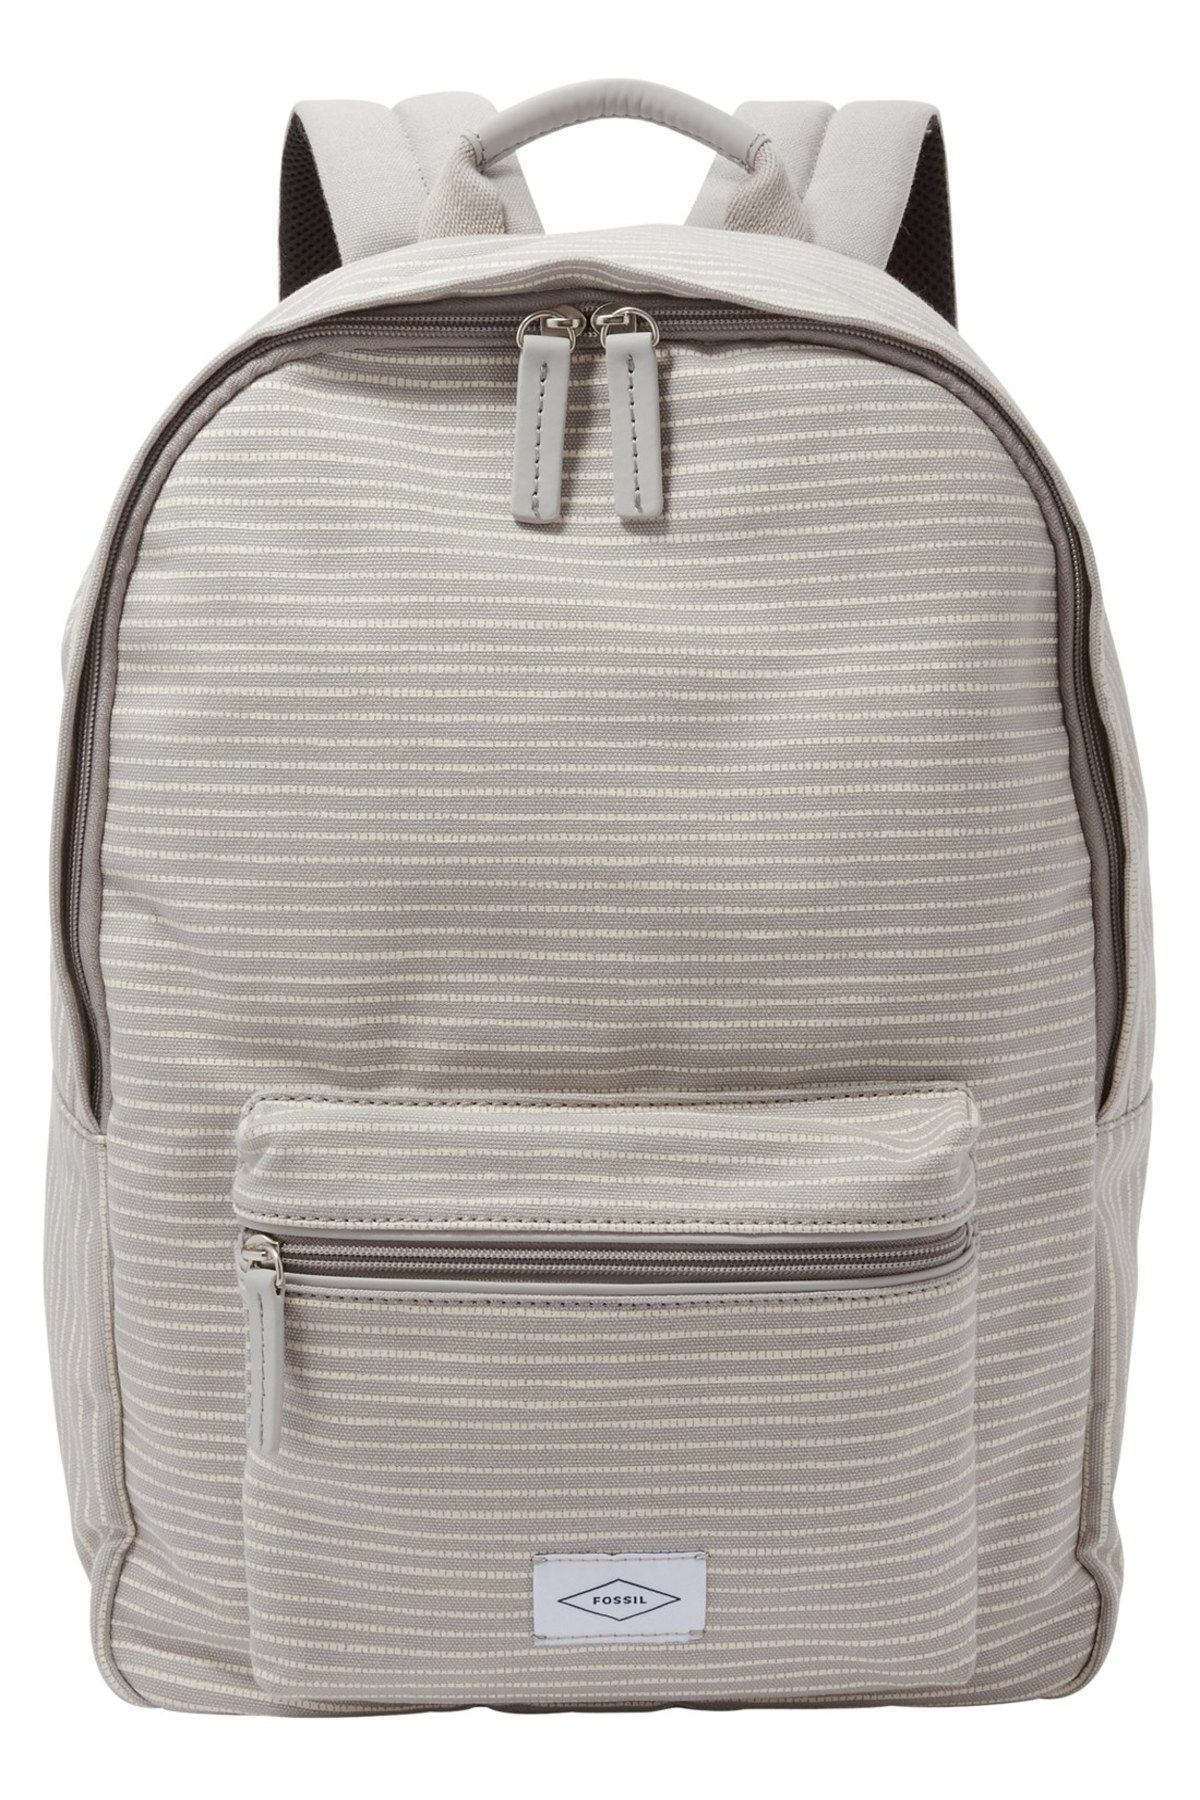 Fossil Ella Canvas Backpack Nordstrom Rack